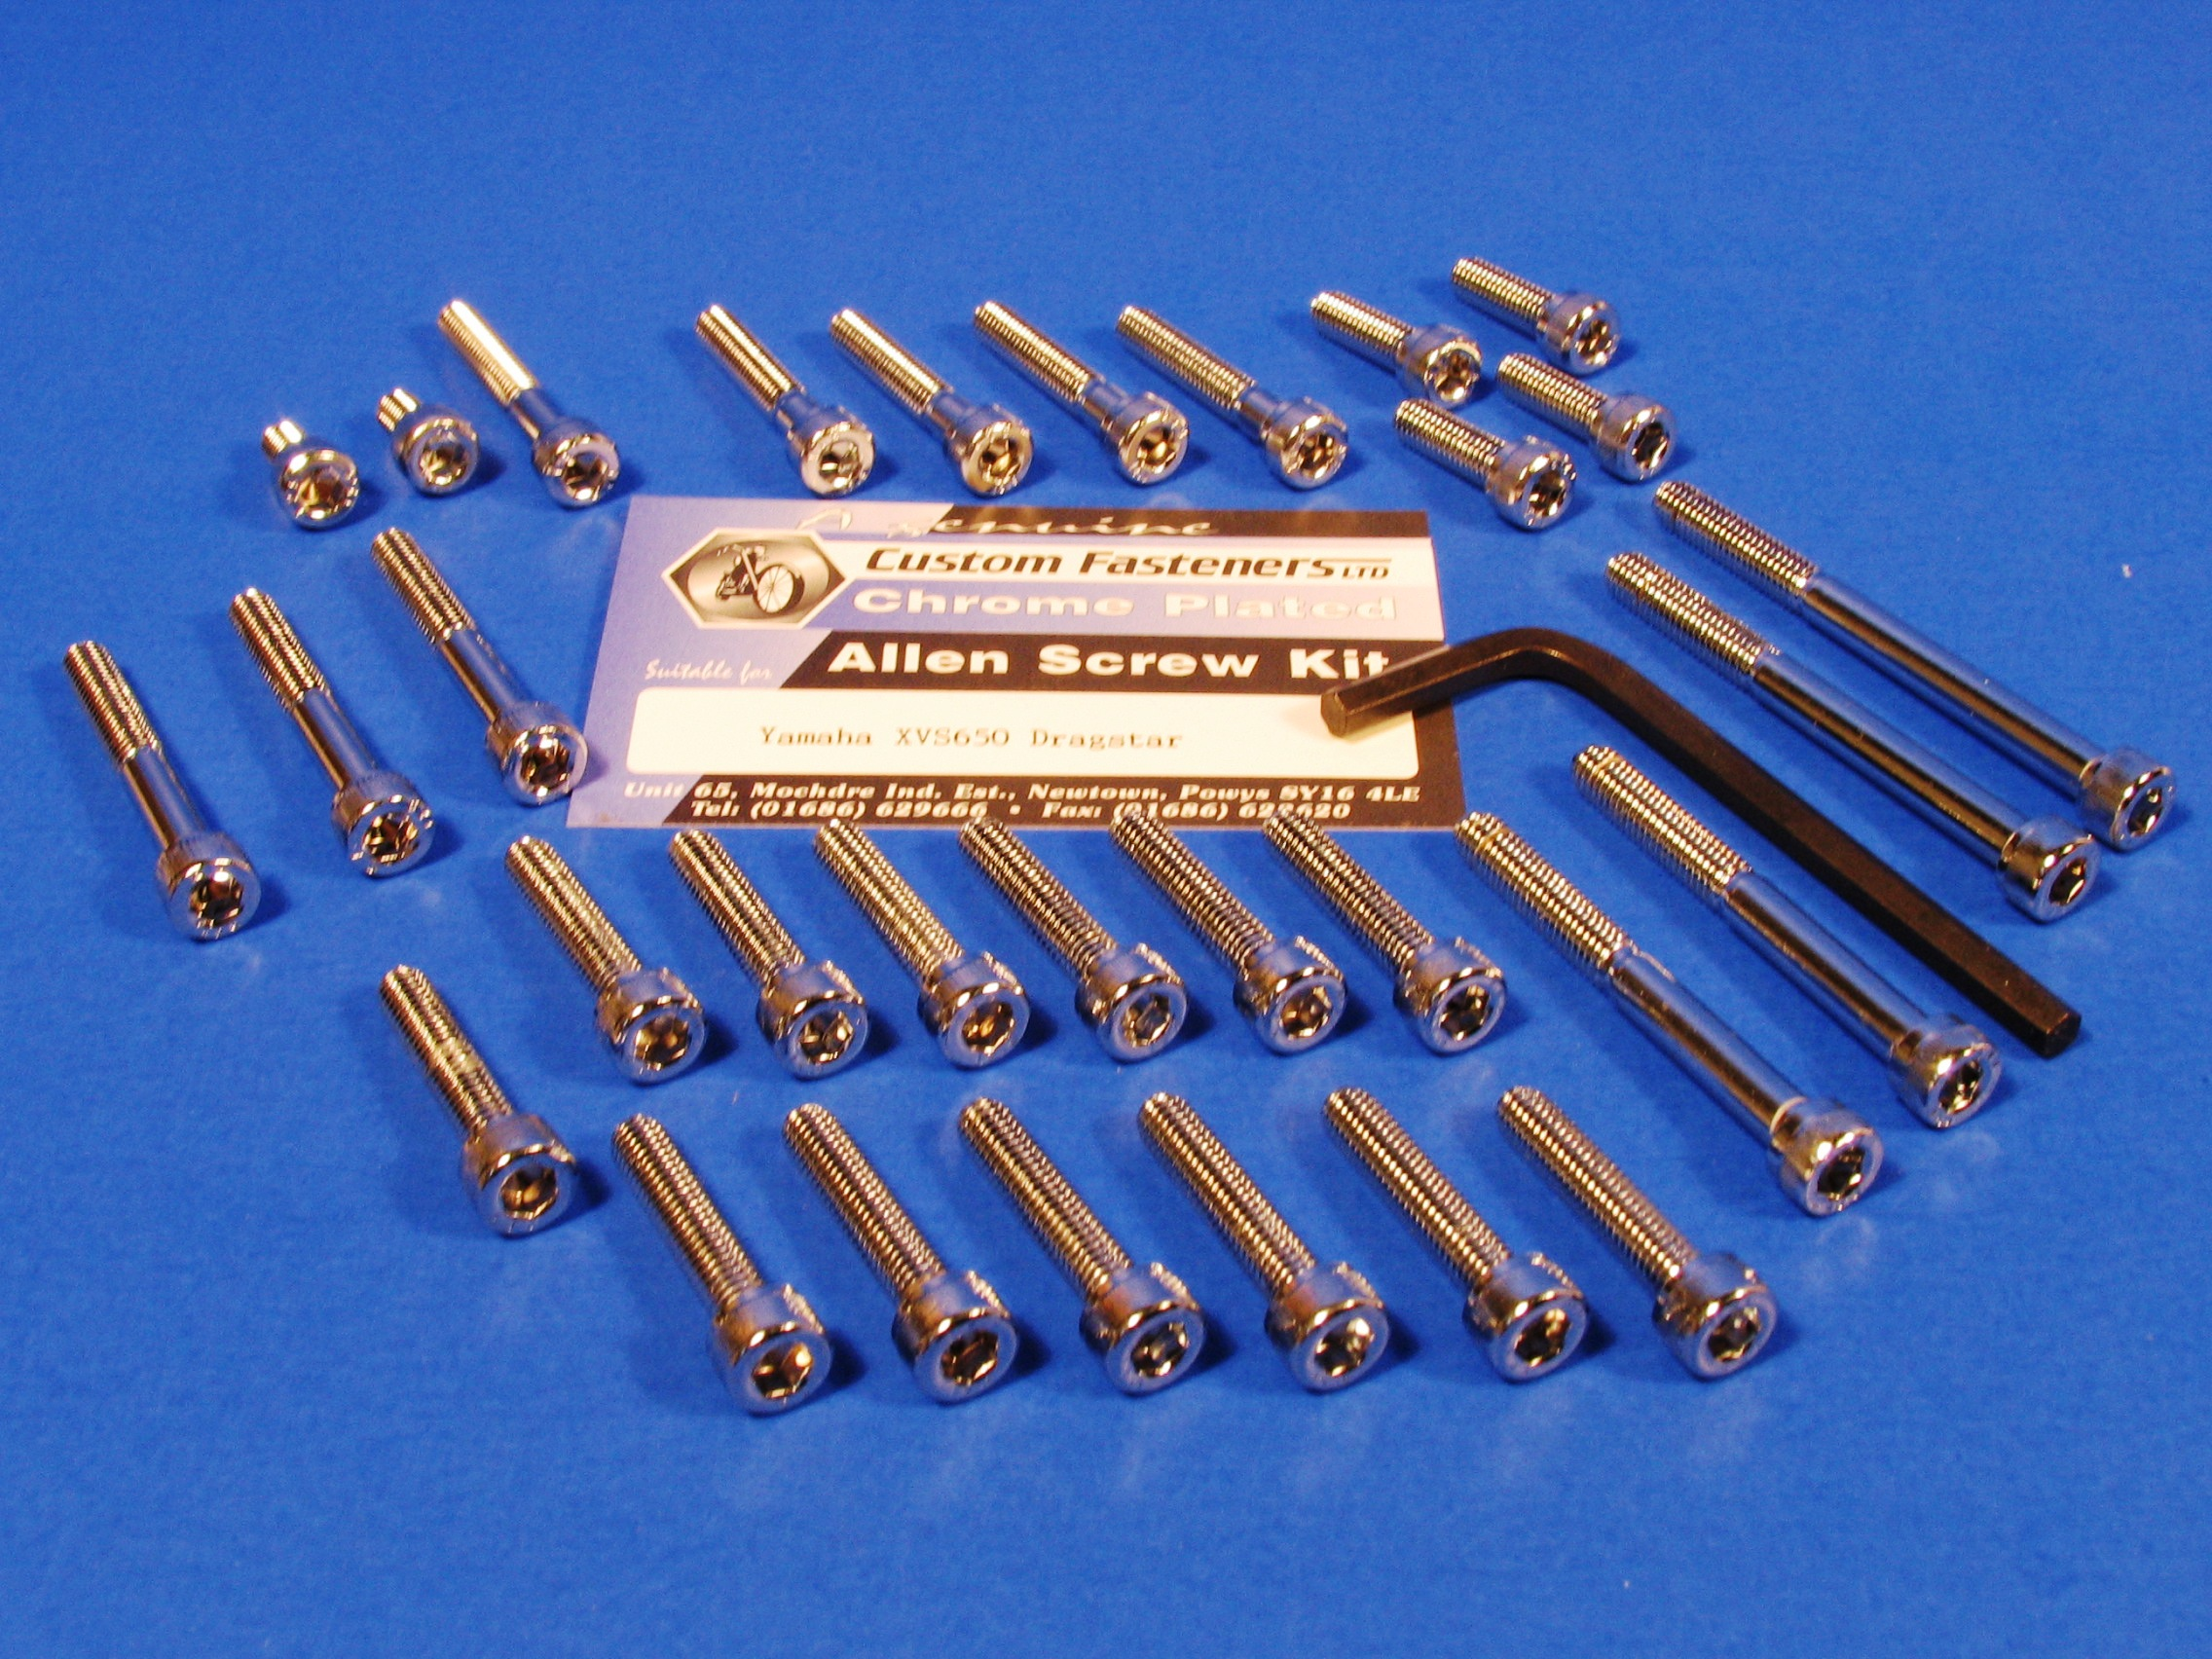 Allen Screw Kits